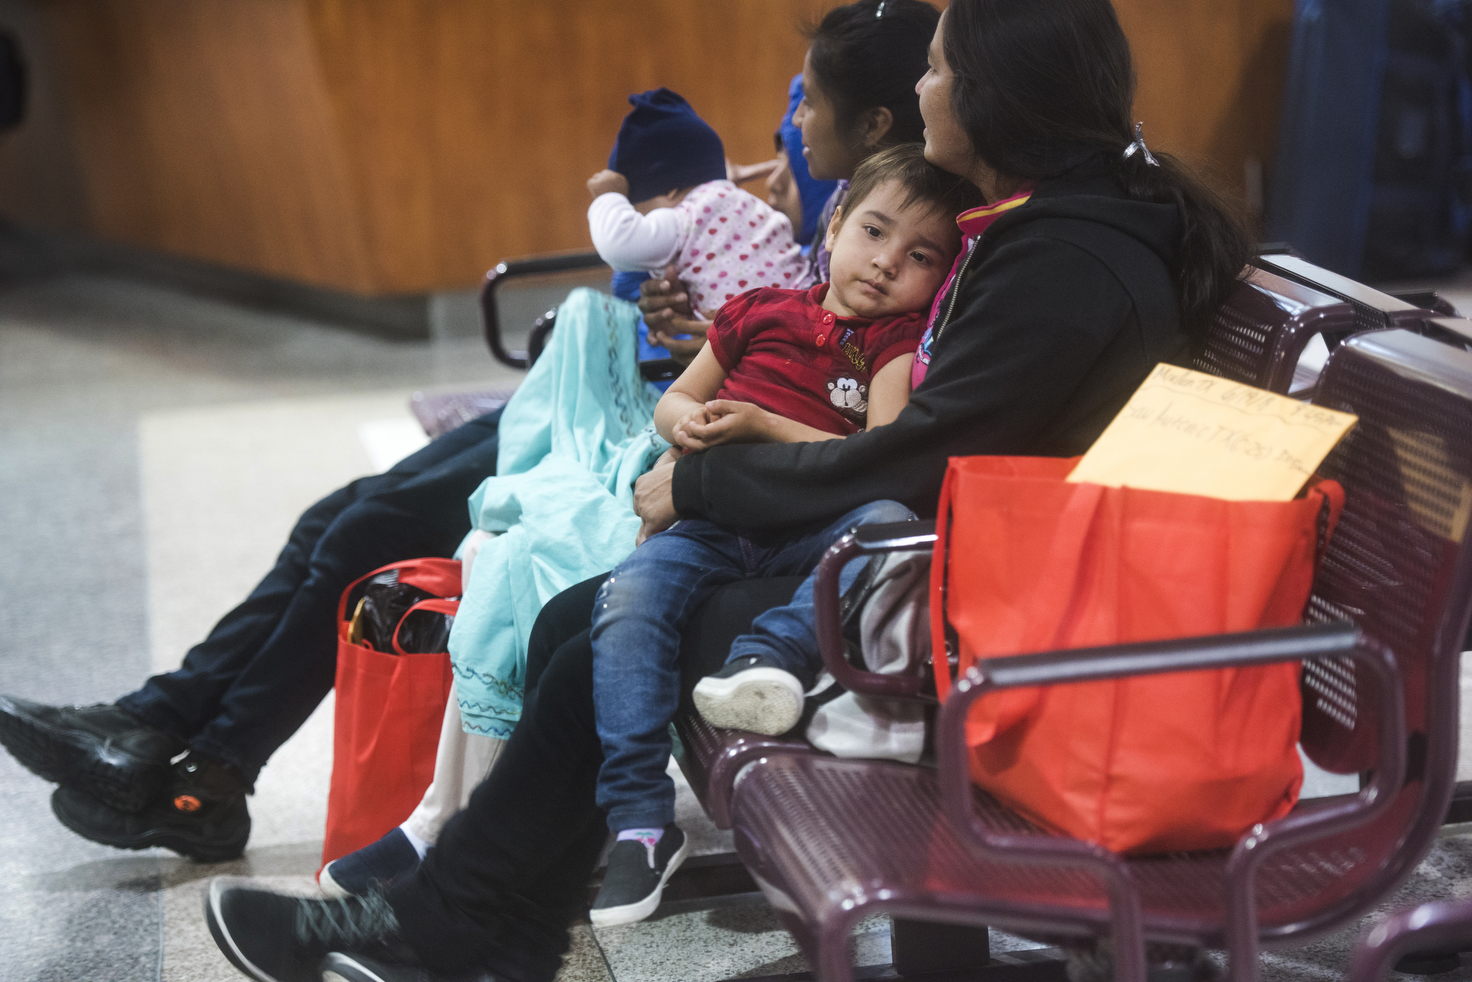 A Guatemalan family waits in the McAllen bus station after leaving border patrol processing and the Catholic Charities shelter on Tuesday, June 19, 2018, in McAllen, TX. AMANDA VOISARD/AMERICAN-STATESMAN